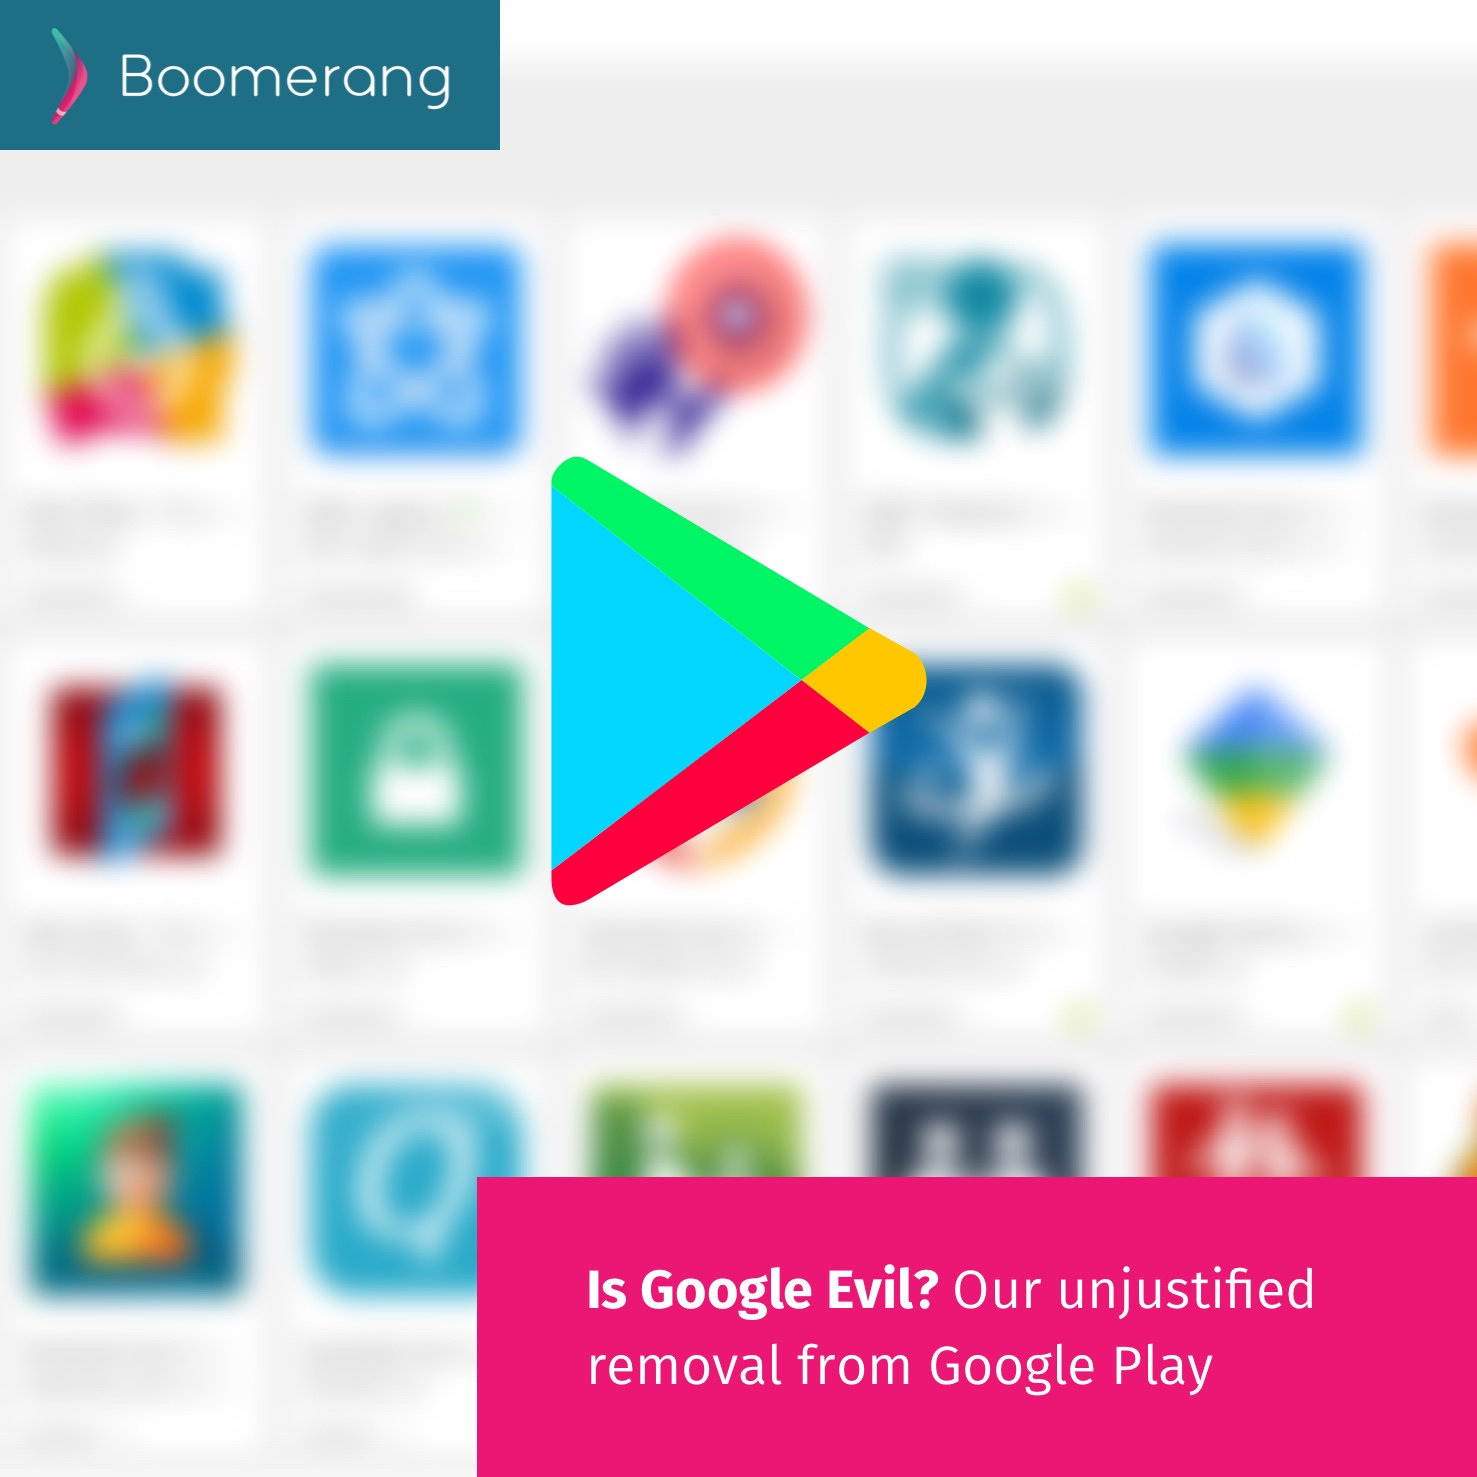 Is Google Evil? Our unjustified removal from Google Play